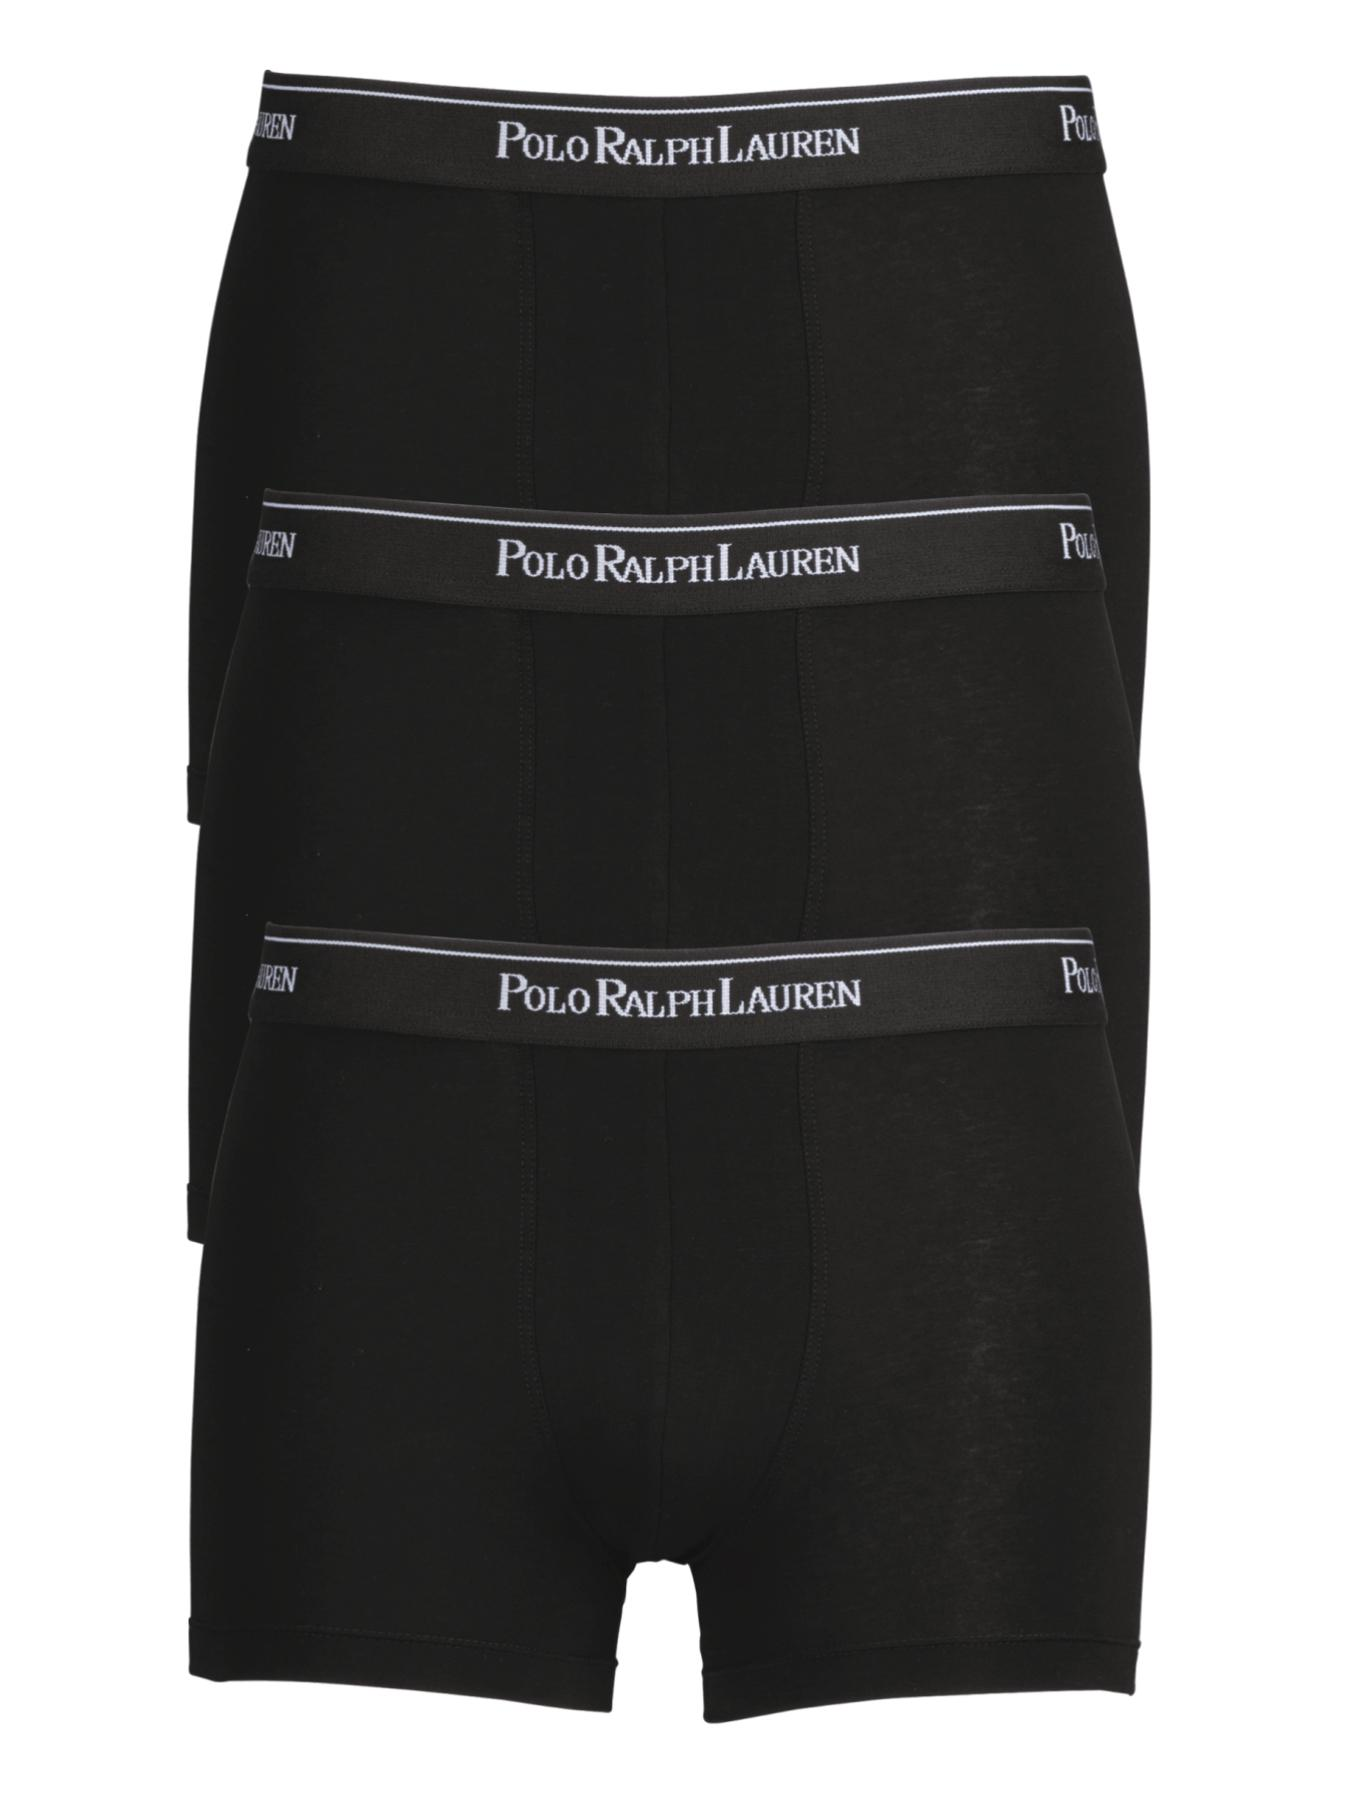 Polo Ralph Lauren Mens Core Trunks (3 Pack) - Black, Black